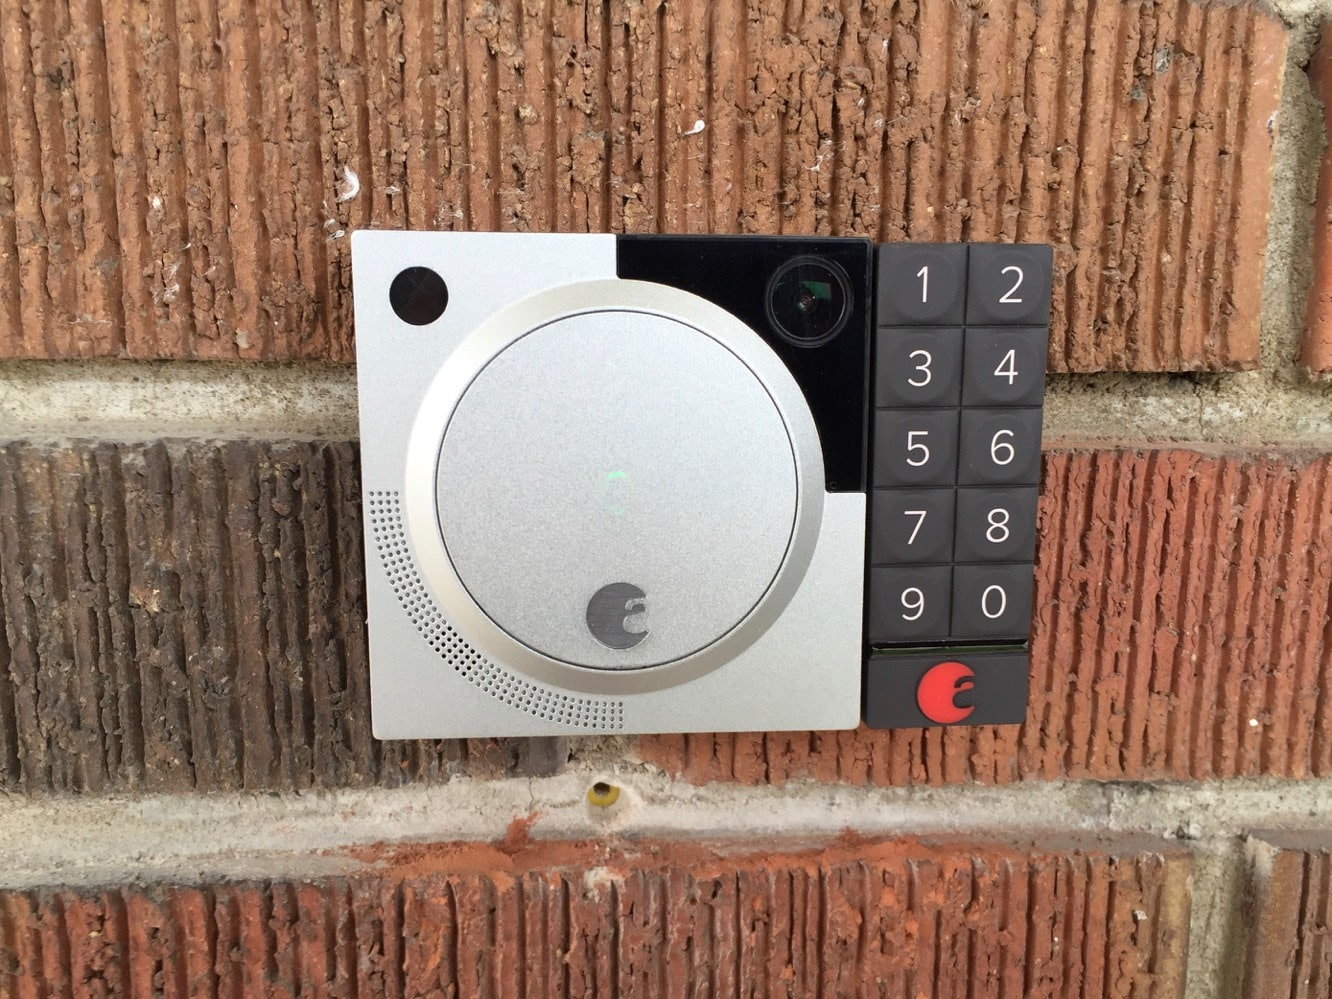 August adds Motion Detection, Video Recording to Doorbell Cam